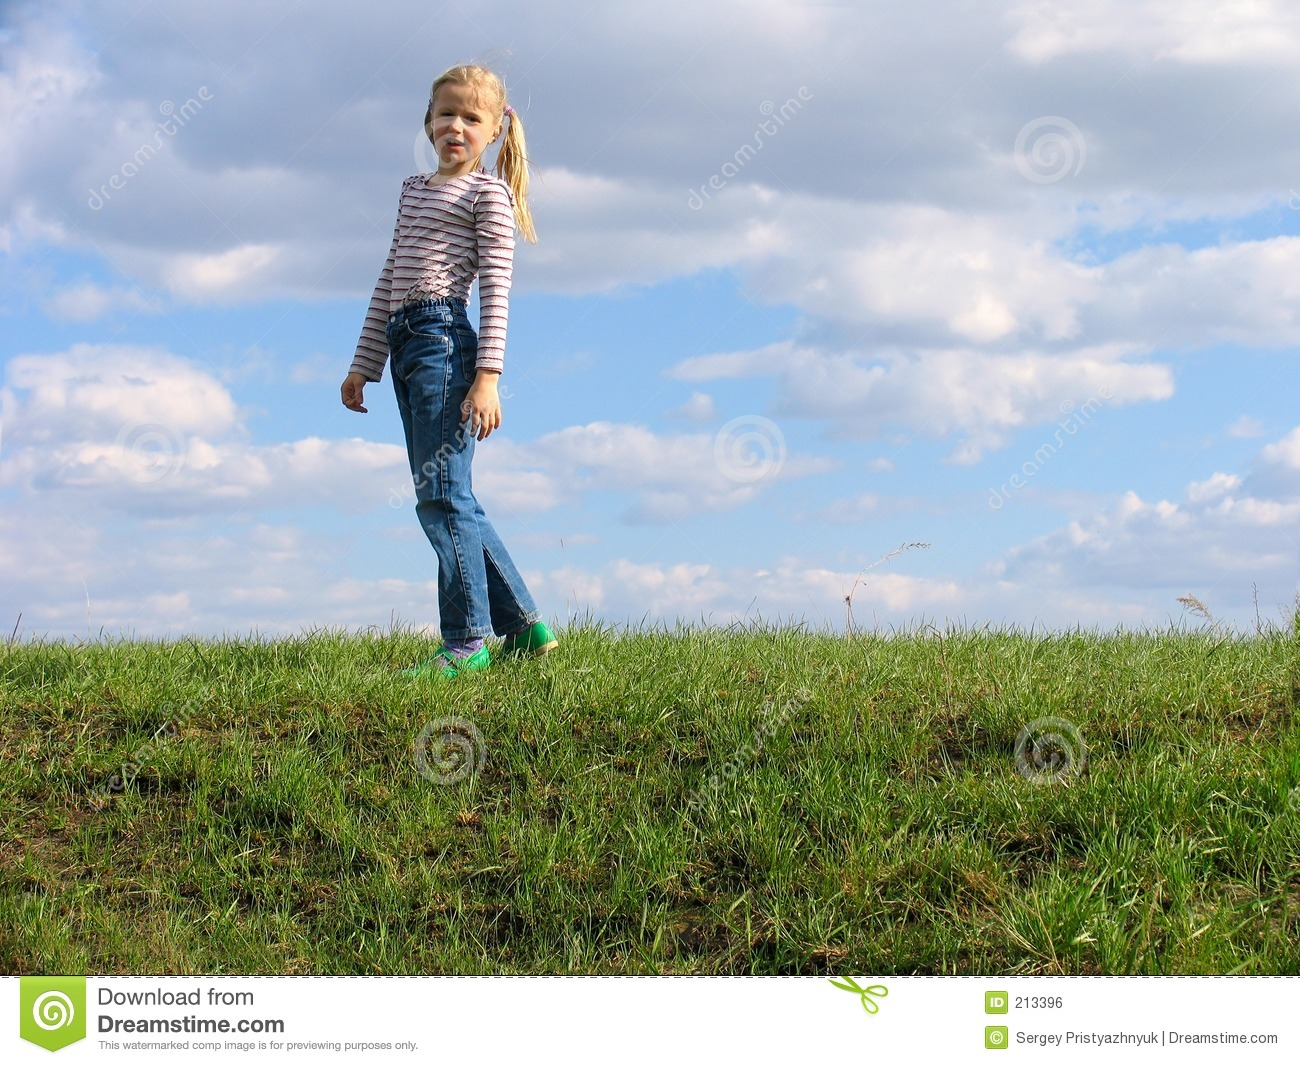 Young girl on grass